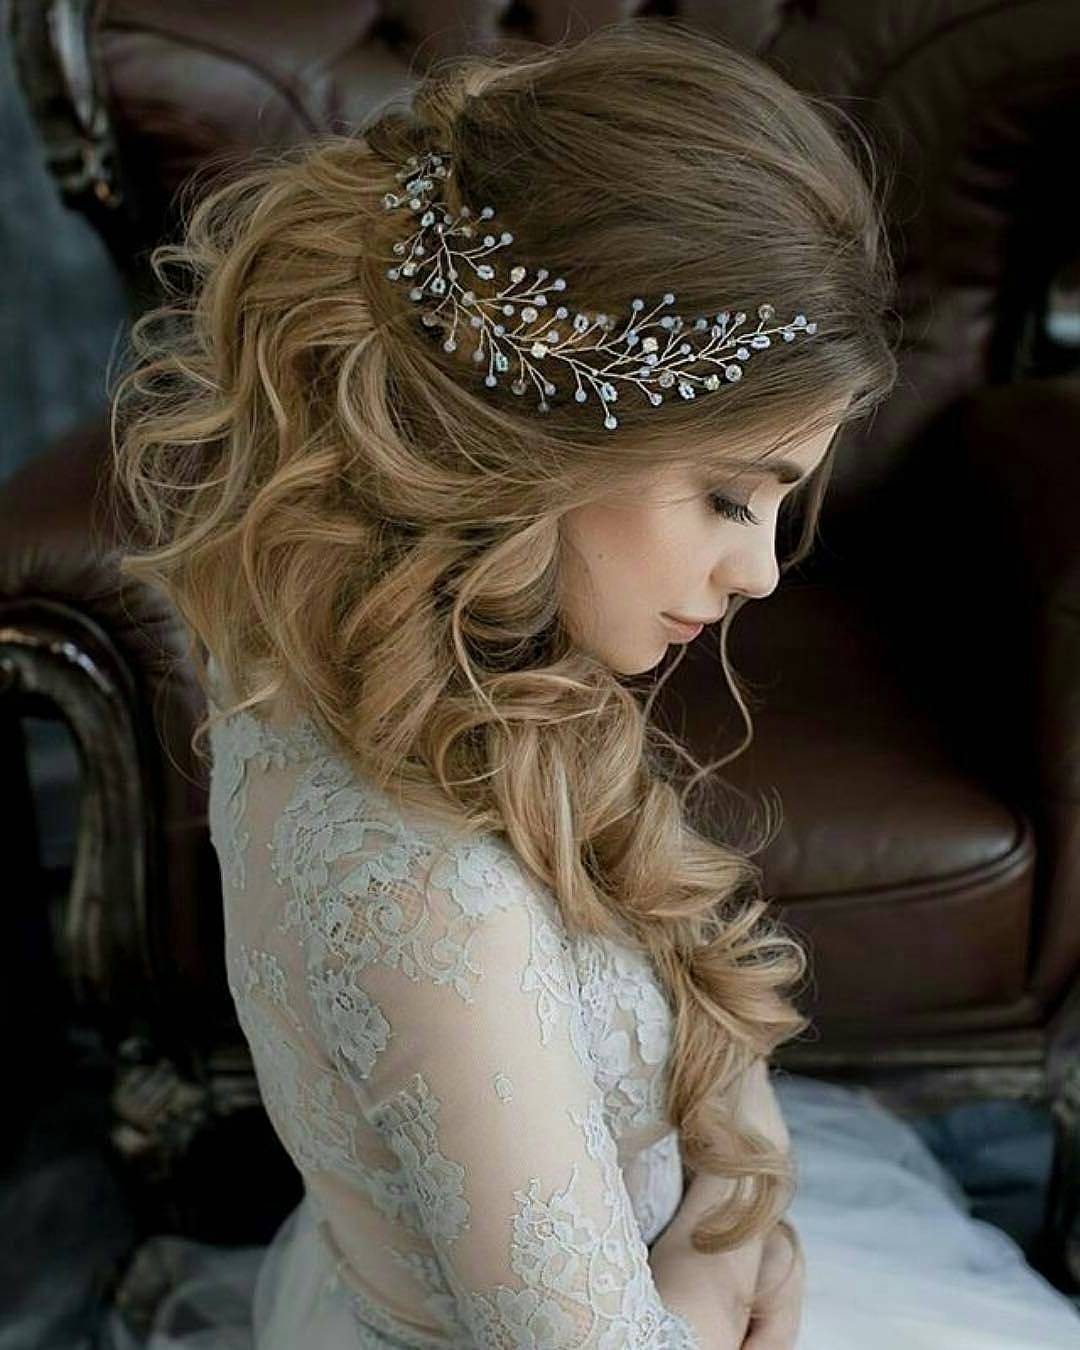 10 Lavish Wedding Hairstyles For Long Hair – Wedding Hairstyle Ideas Intended For Fashionable Wedding Reception Hairstyles For Long Hair (View 3 of 15)